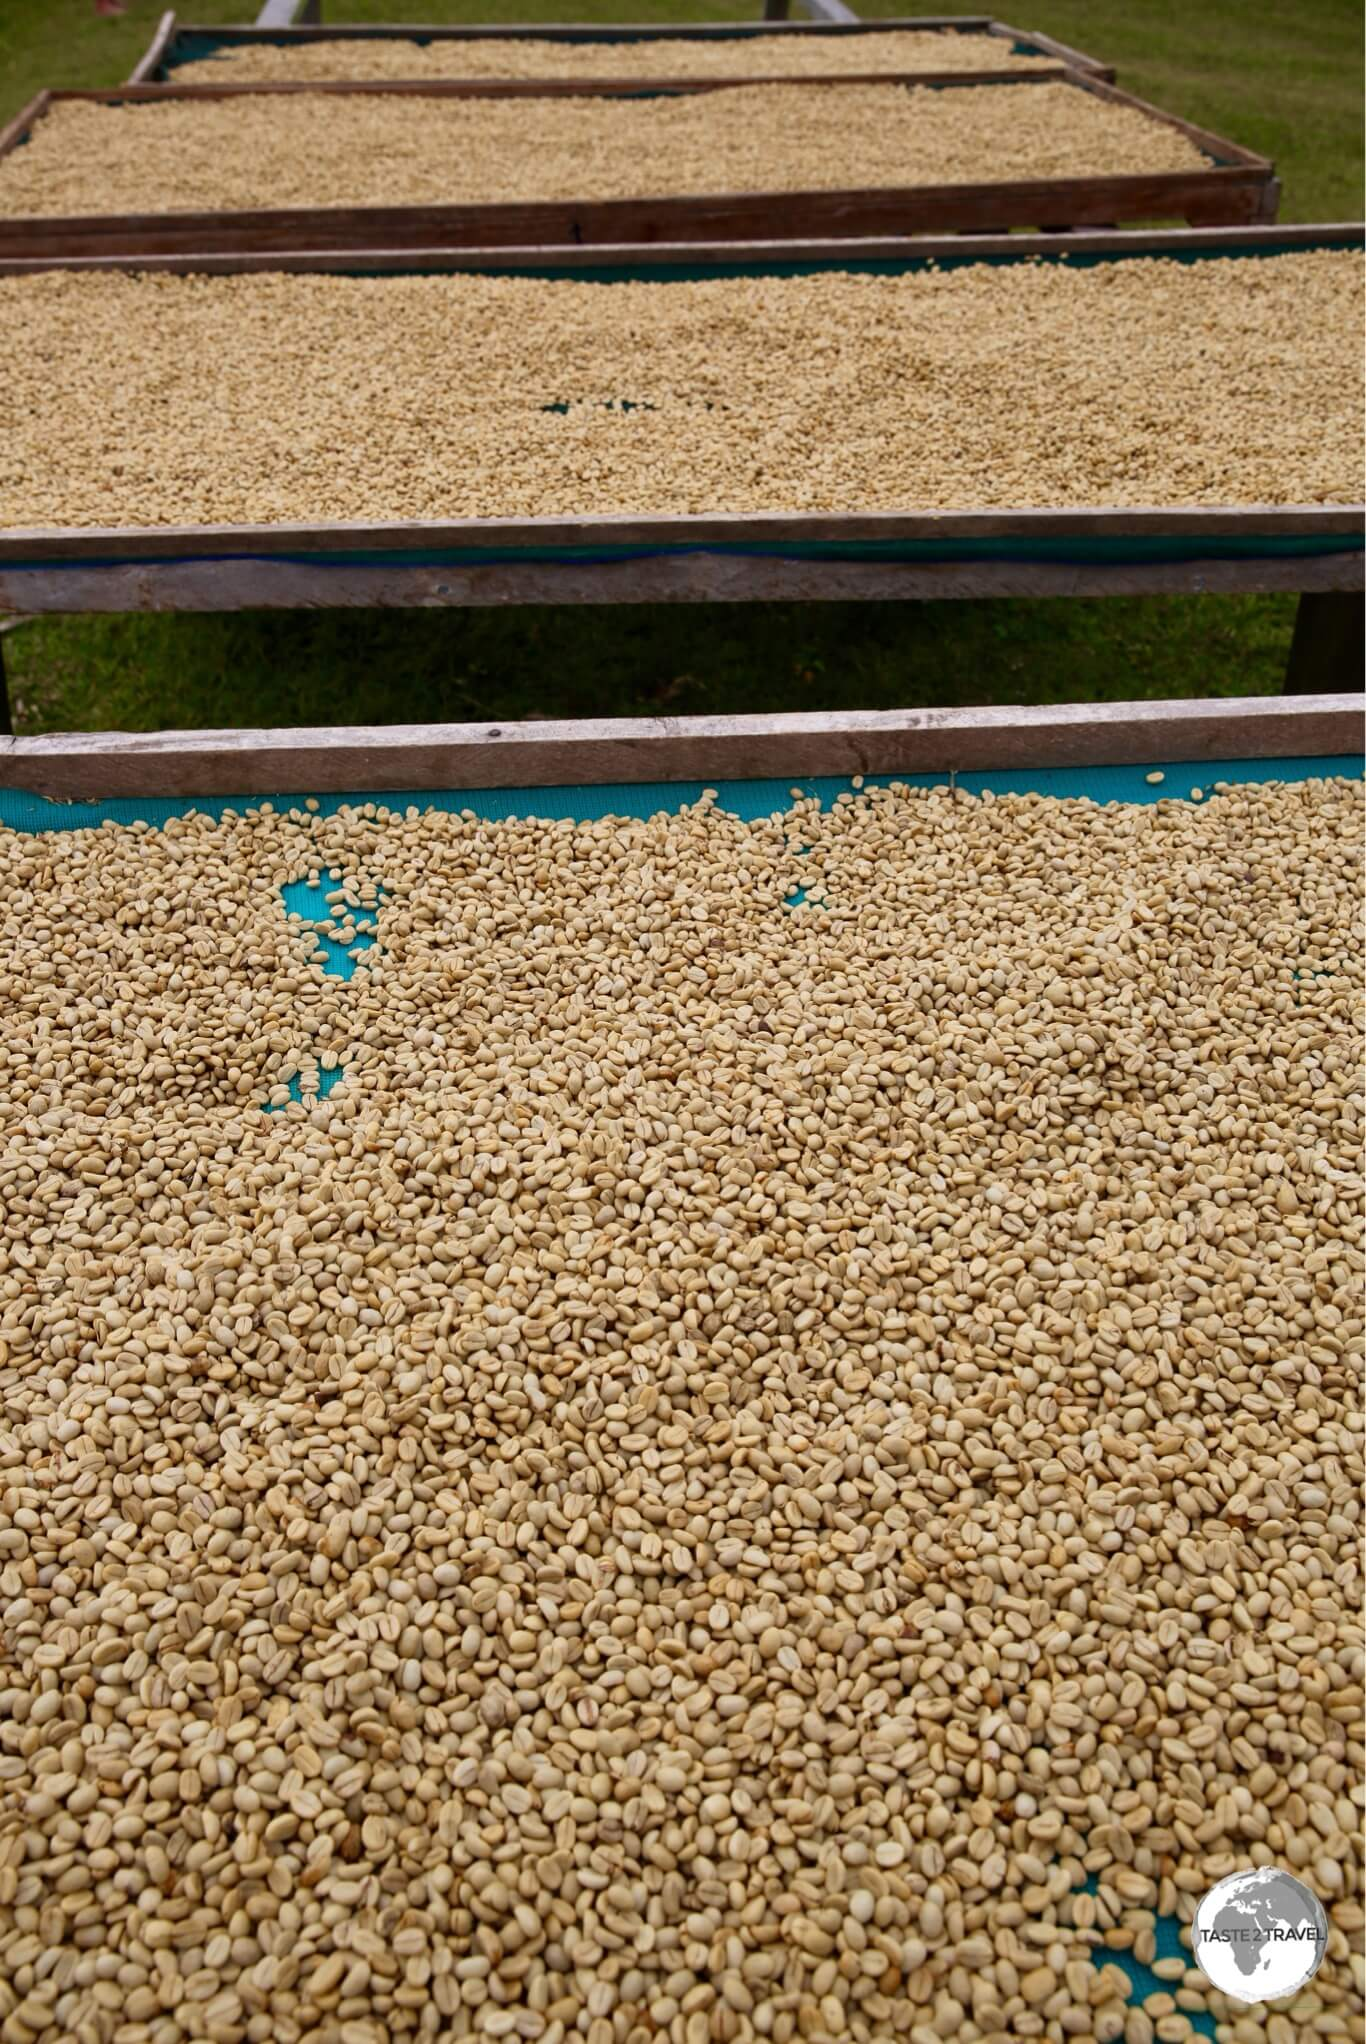 Green Arabica beans drying in the sun before being transported to Port Vila for roasting.